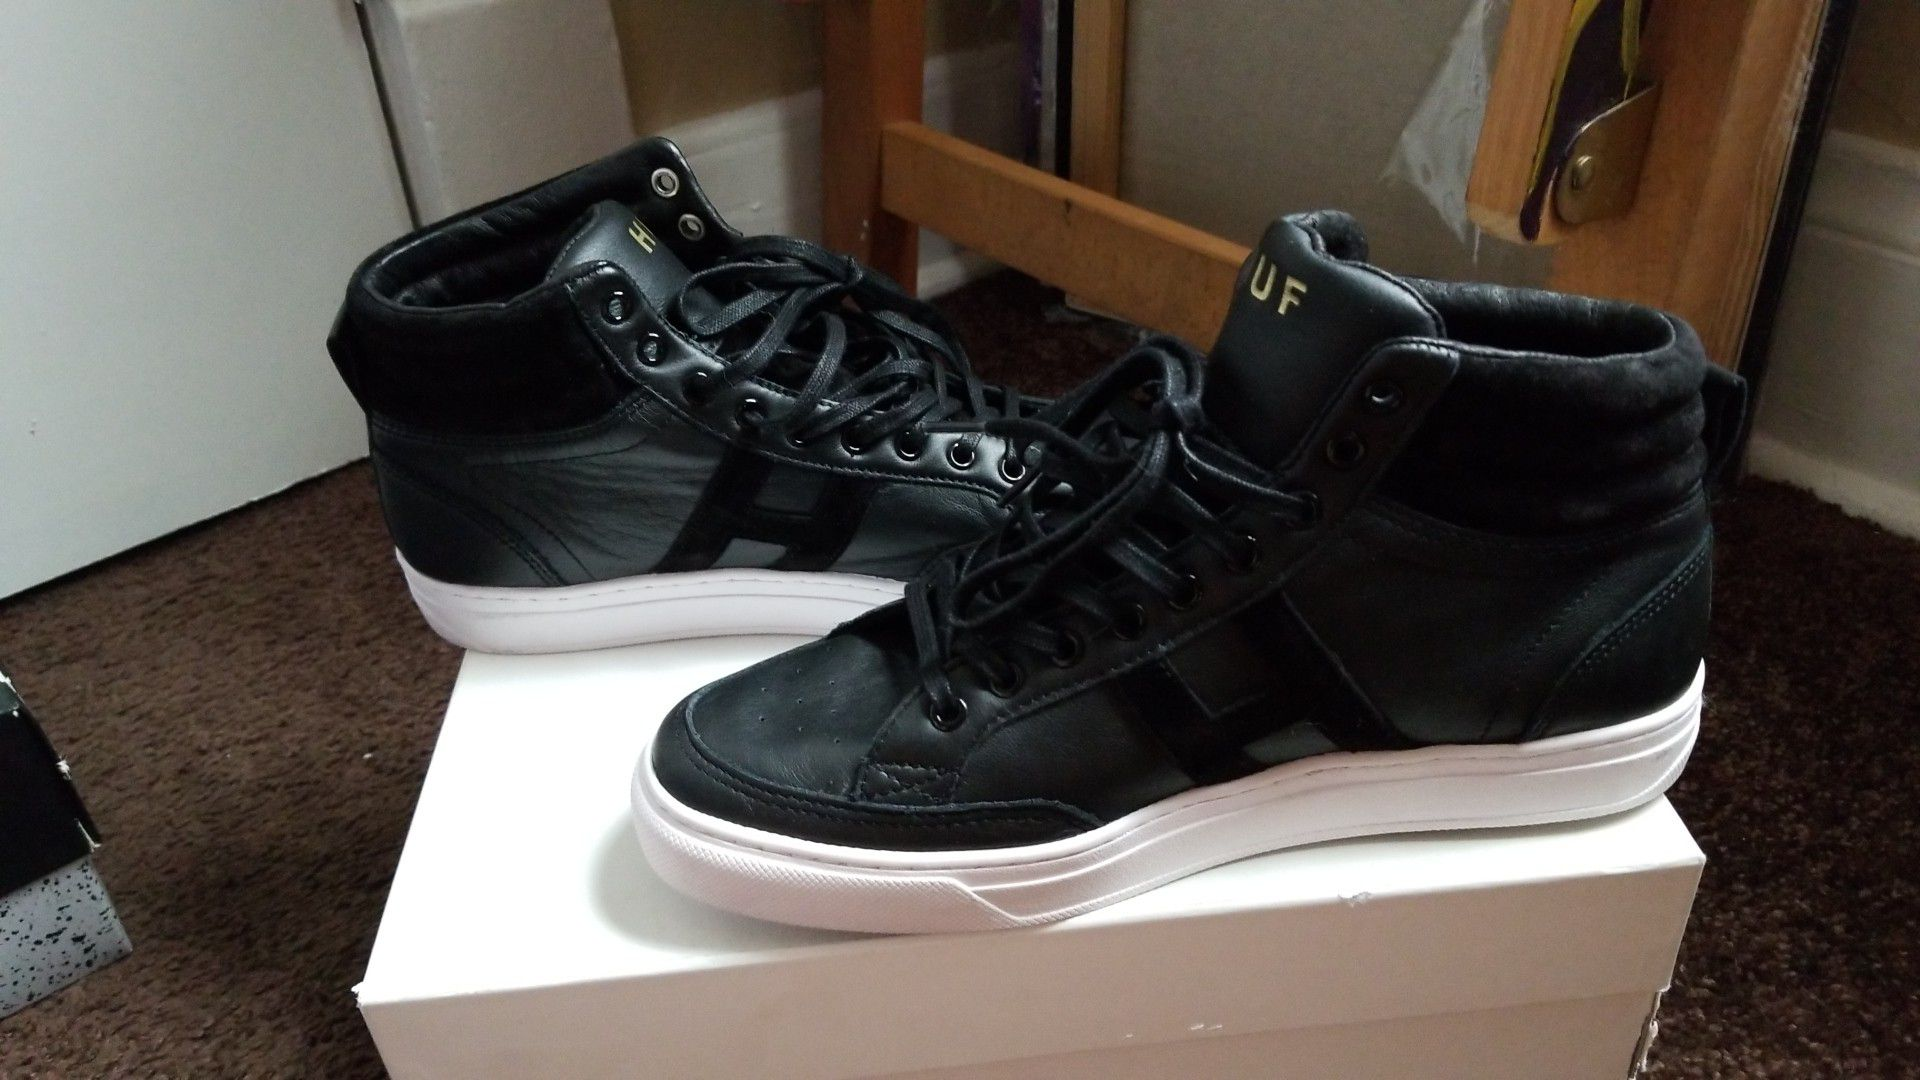 HUF brand shoes men size 8.5